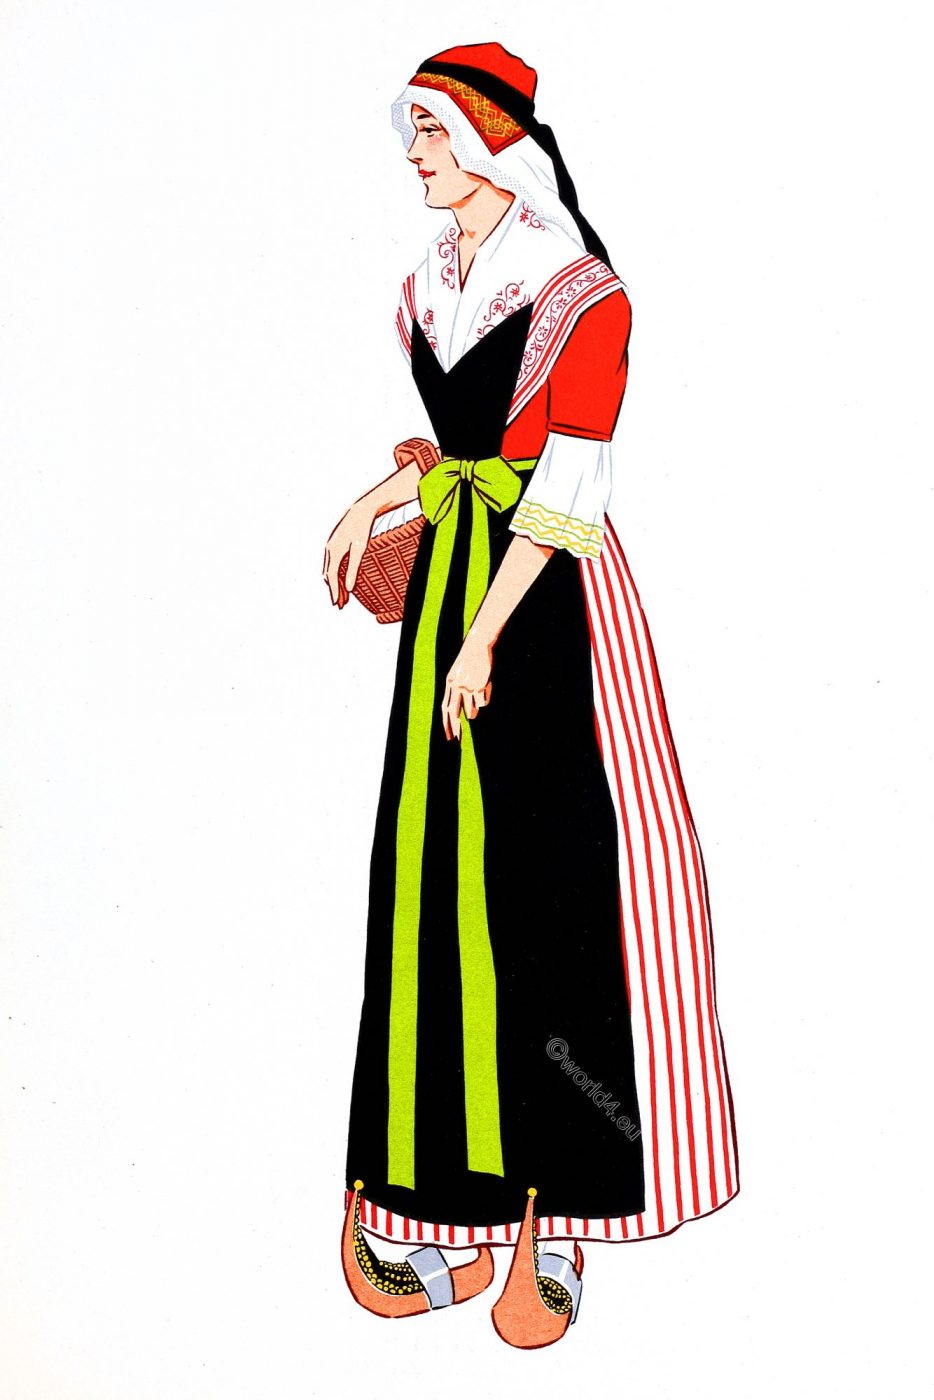 French, Pyrenees, Bethmale Valley, costume, traditional clothing, woman, France